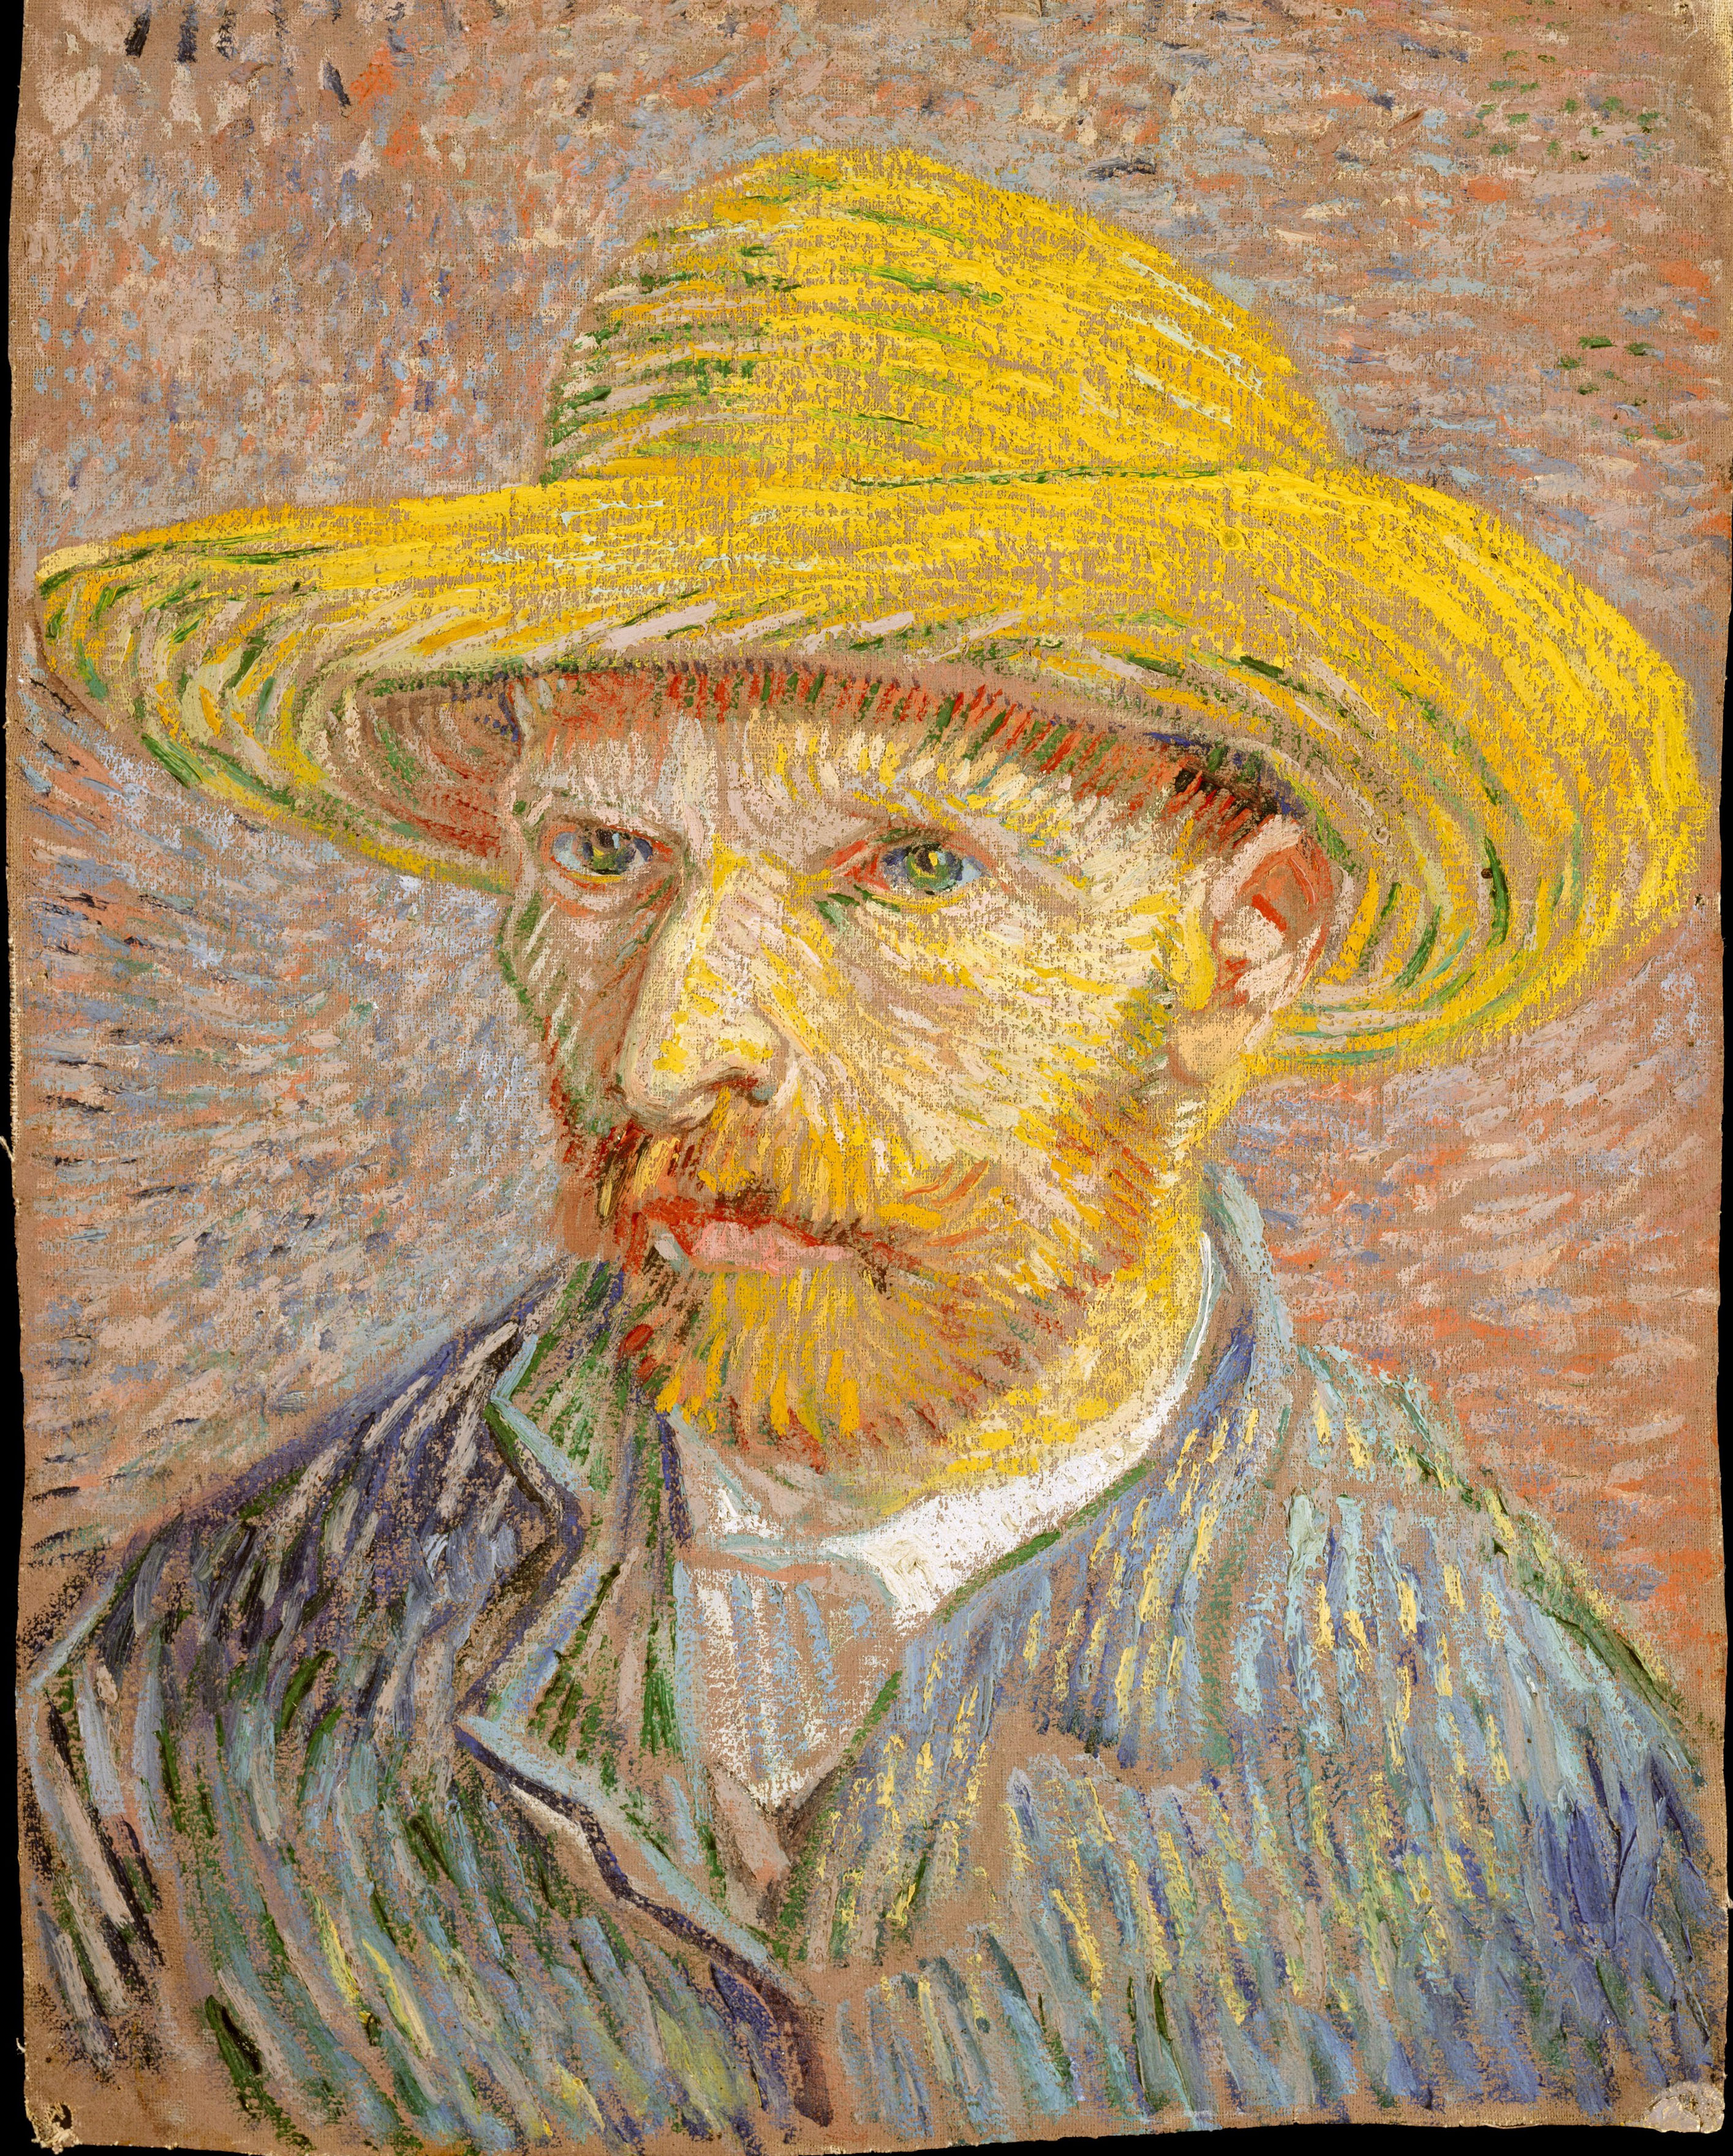 Vang Gogh Cuadros Vincent Van Gogh Self Portrait With A Straw Hat Obverse The